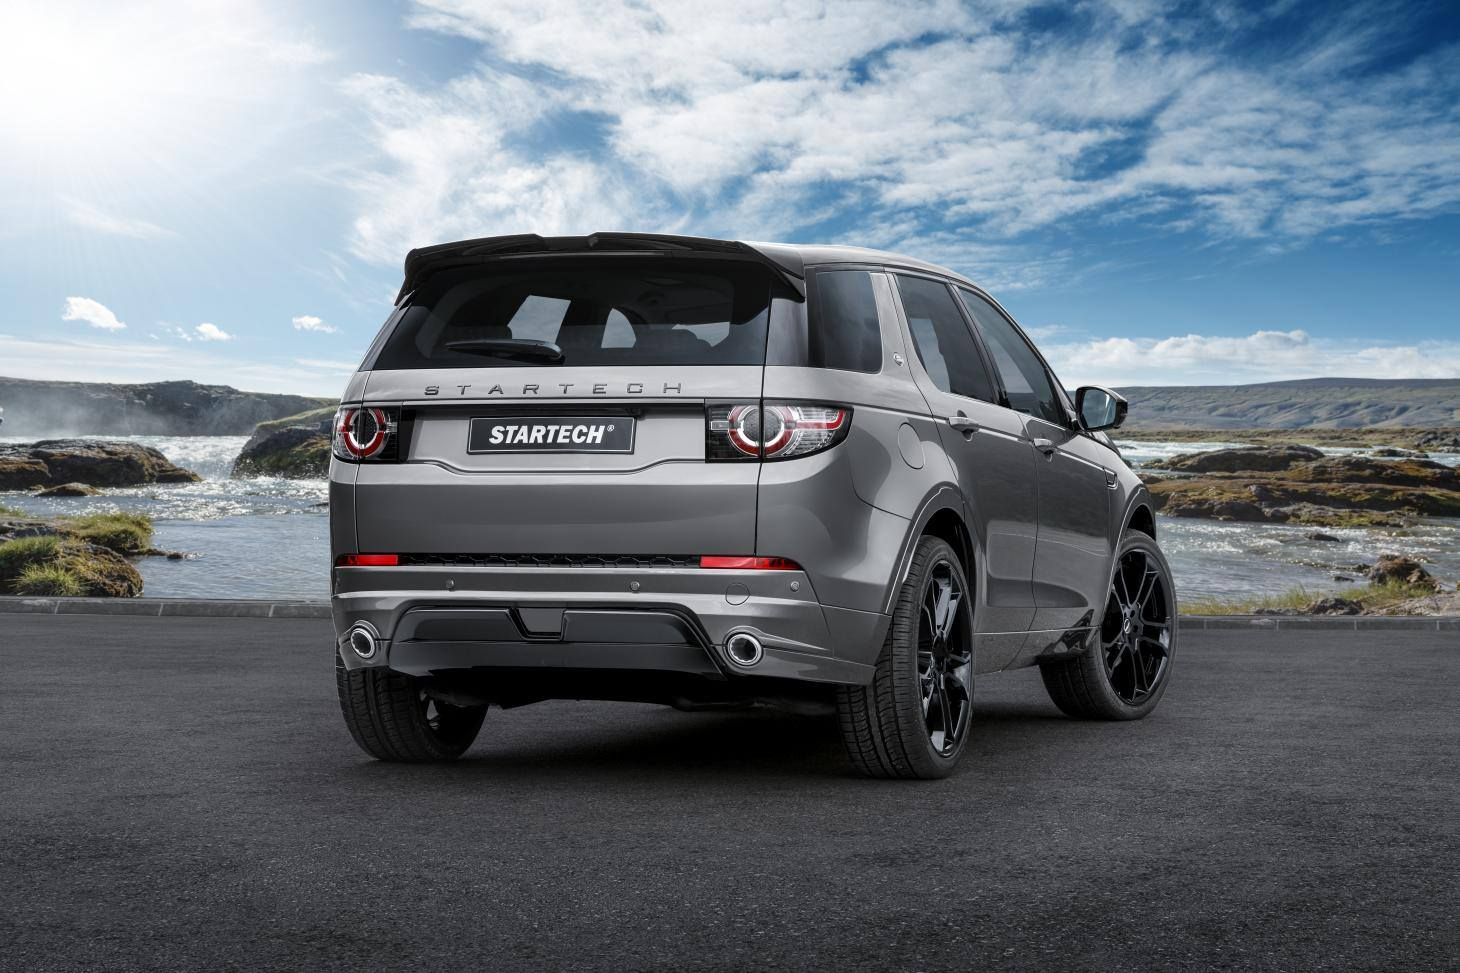 Startech Transforms Discovery Sport From Family Suv To Assault